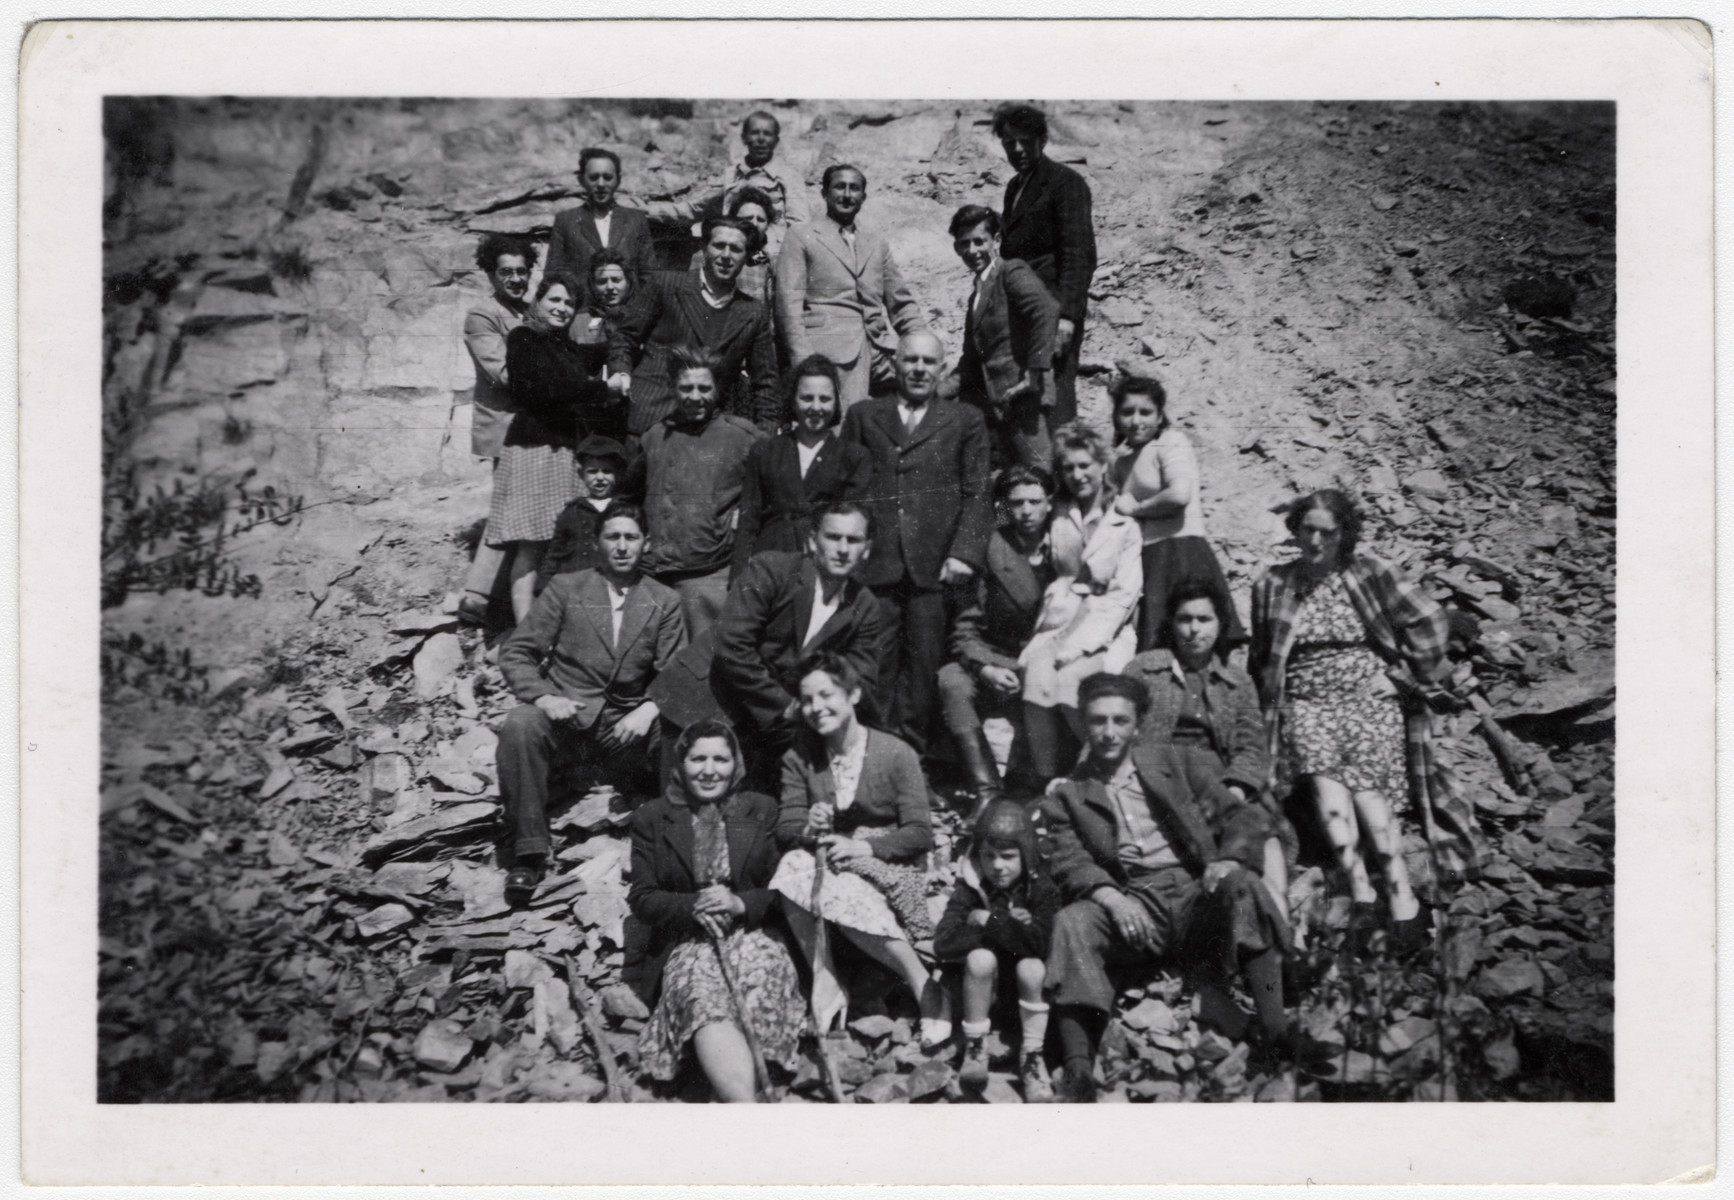 Former Zhetel partisans go on a picnic shortly after liberation.  Sonia Minuskin is on the borrom left.  Her son Henikel is sitting in the front wearing shorts.